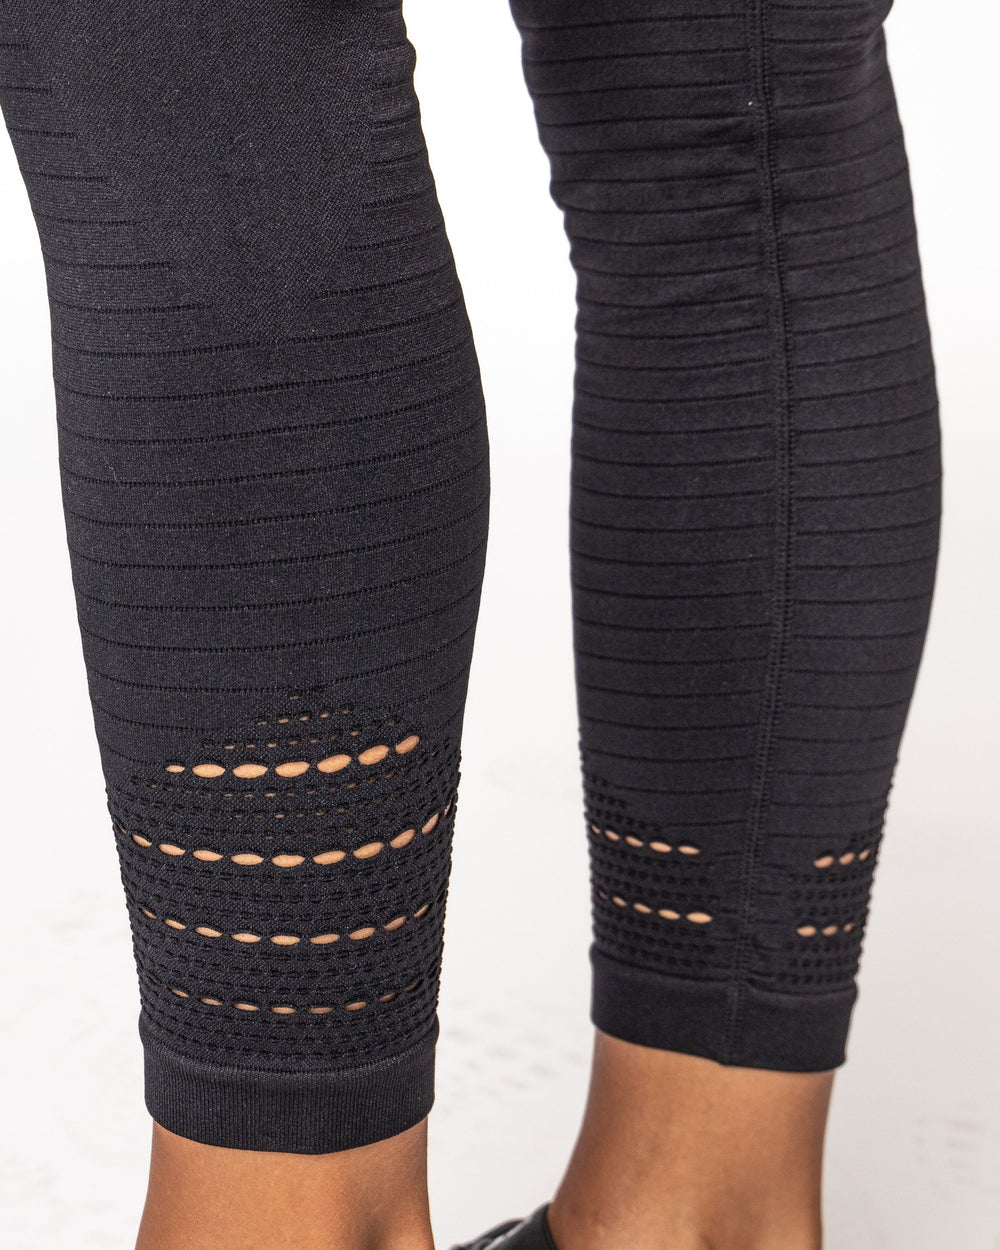 FORM Leggings - Black WOMEN'S LEGGINGS STAIX